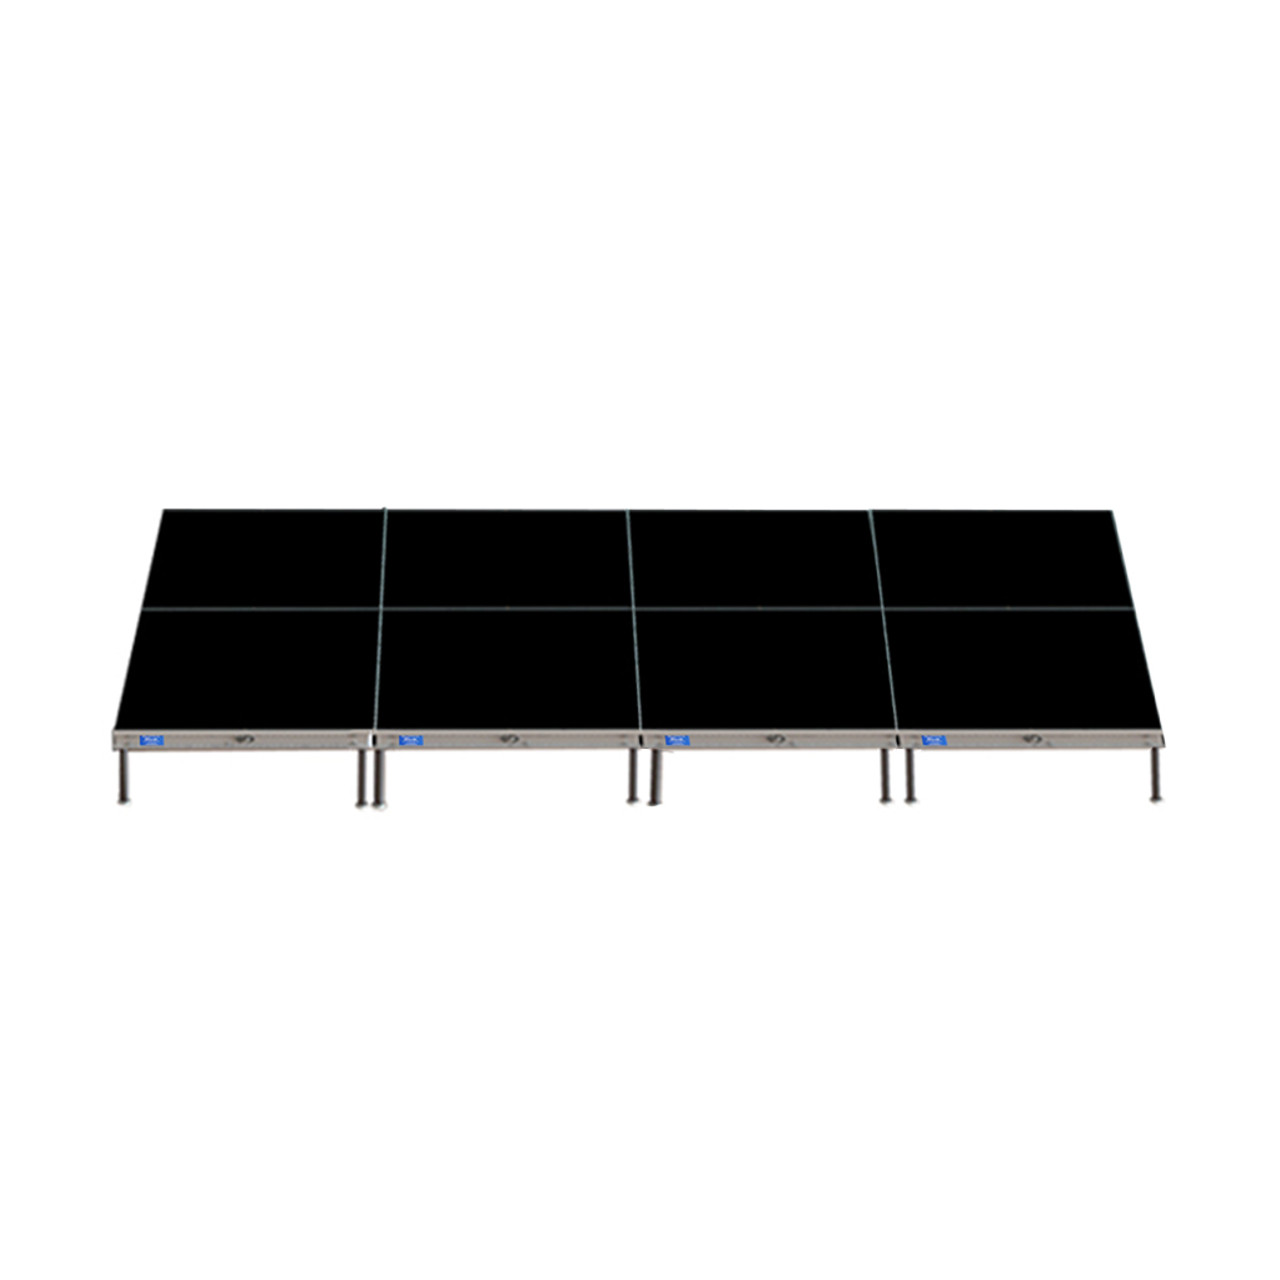 Top Rated Quik Stage 8' x 16' High Portable Stage Package with Black Polyvinyl Non-Skid Surface. Additional Heights and Surfaces Available - Front view